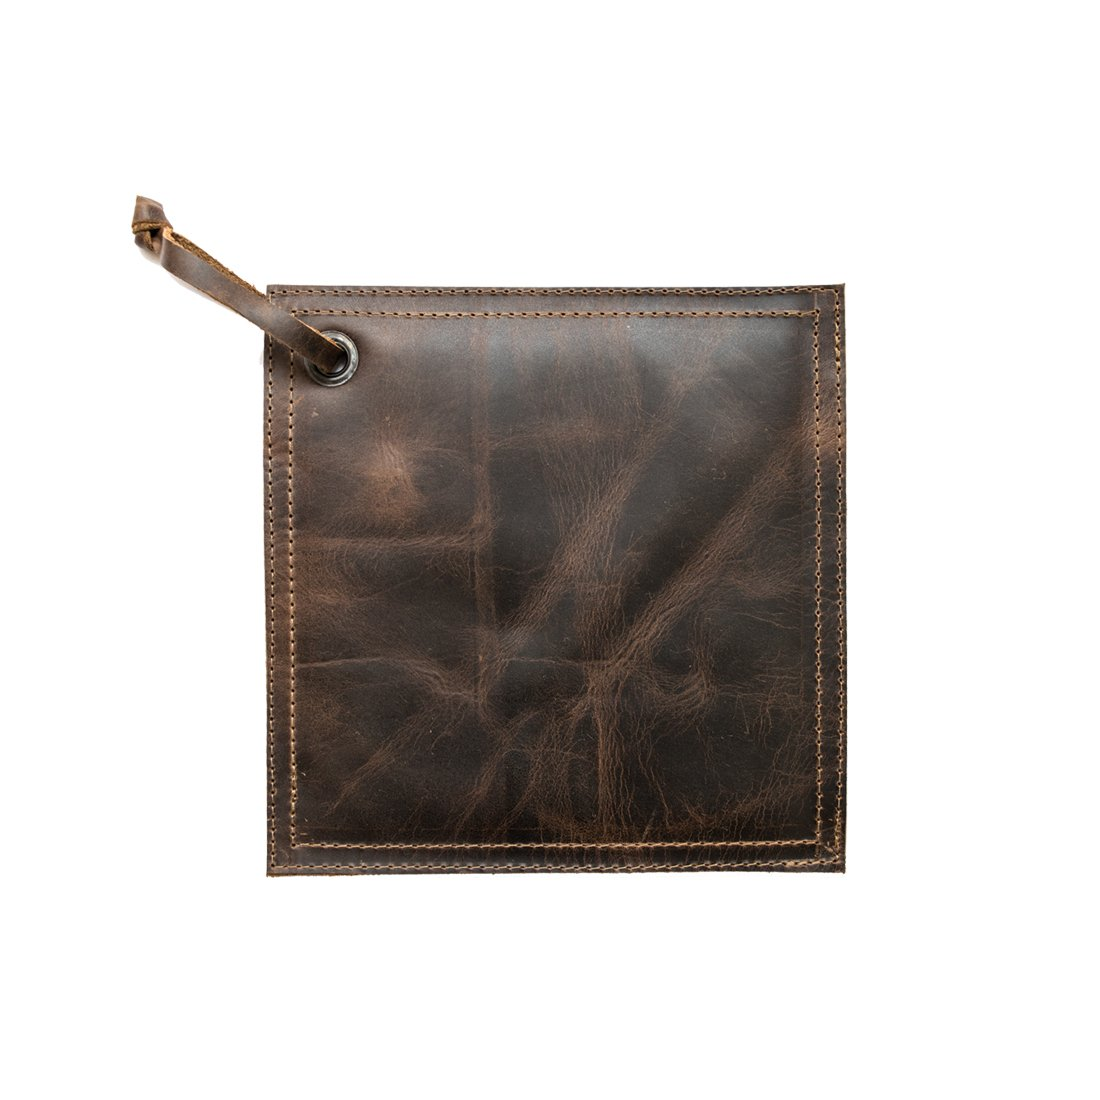 Hide & Drink Rustic Leather Hot Pot Pad (Potholder), Double Layered, Double Stitched and Handmade Bourbon Brown by Hide & Drink